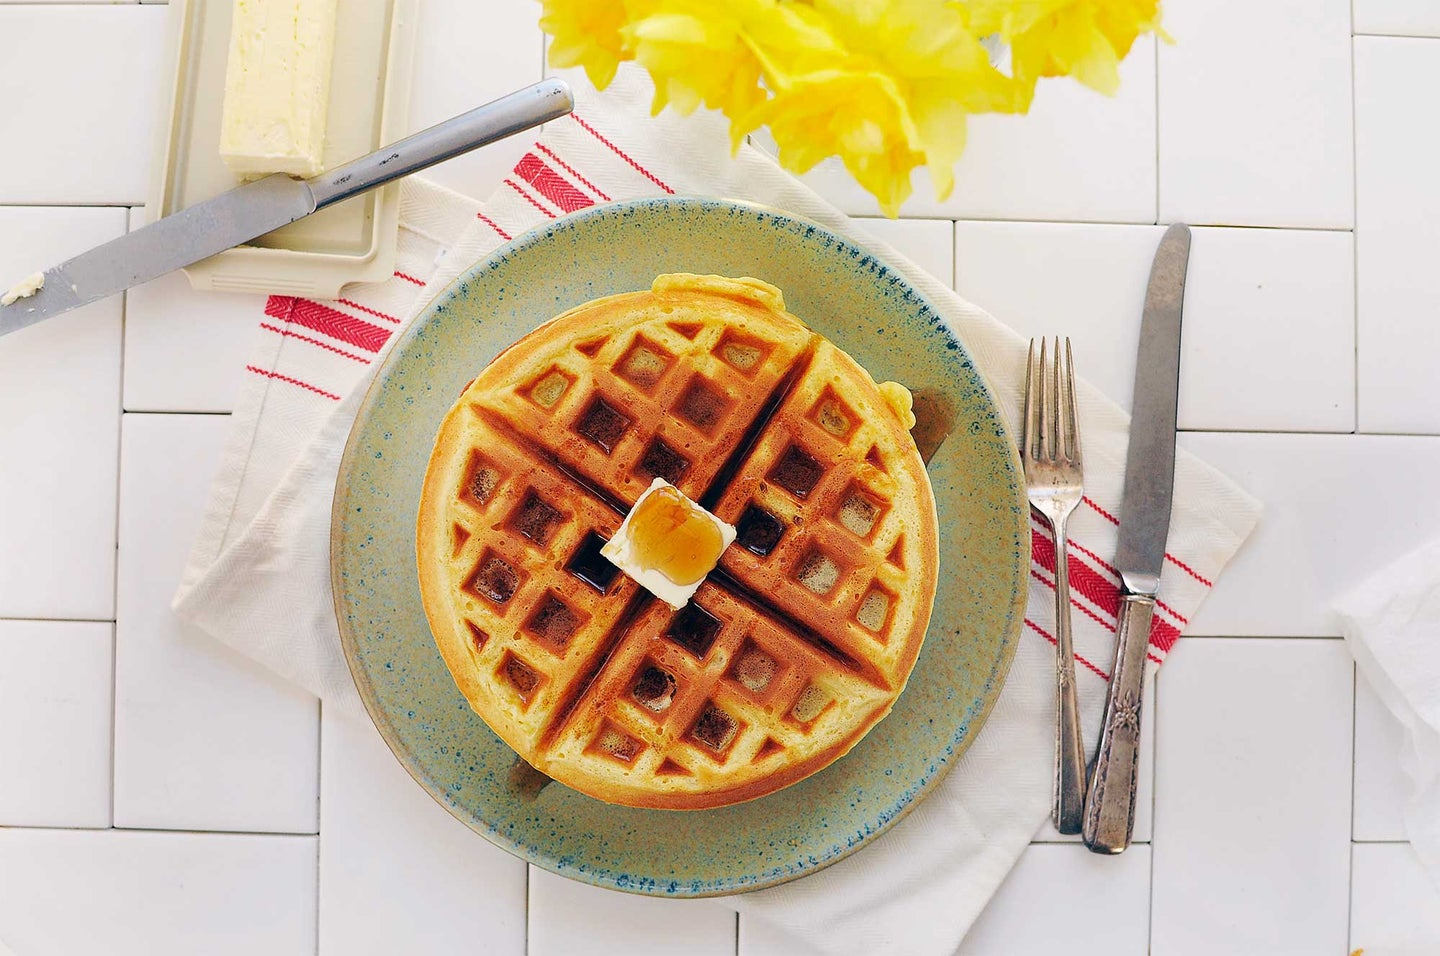 Waffle with dollop of butter and syrup